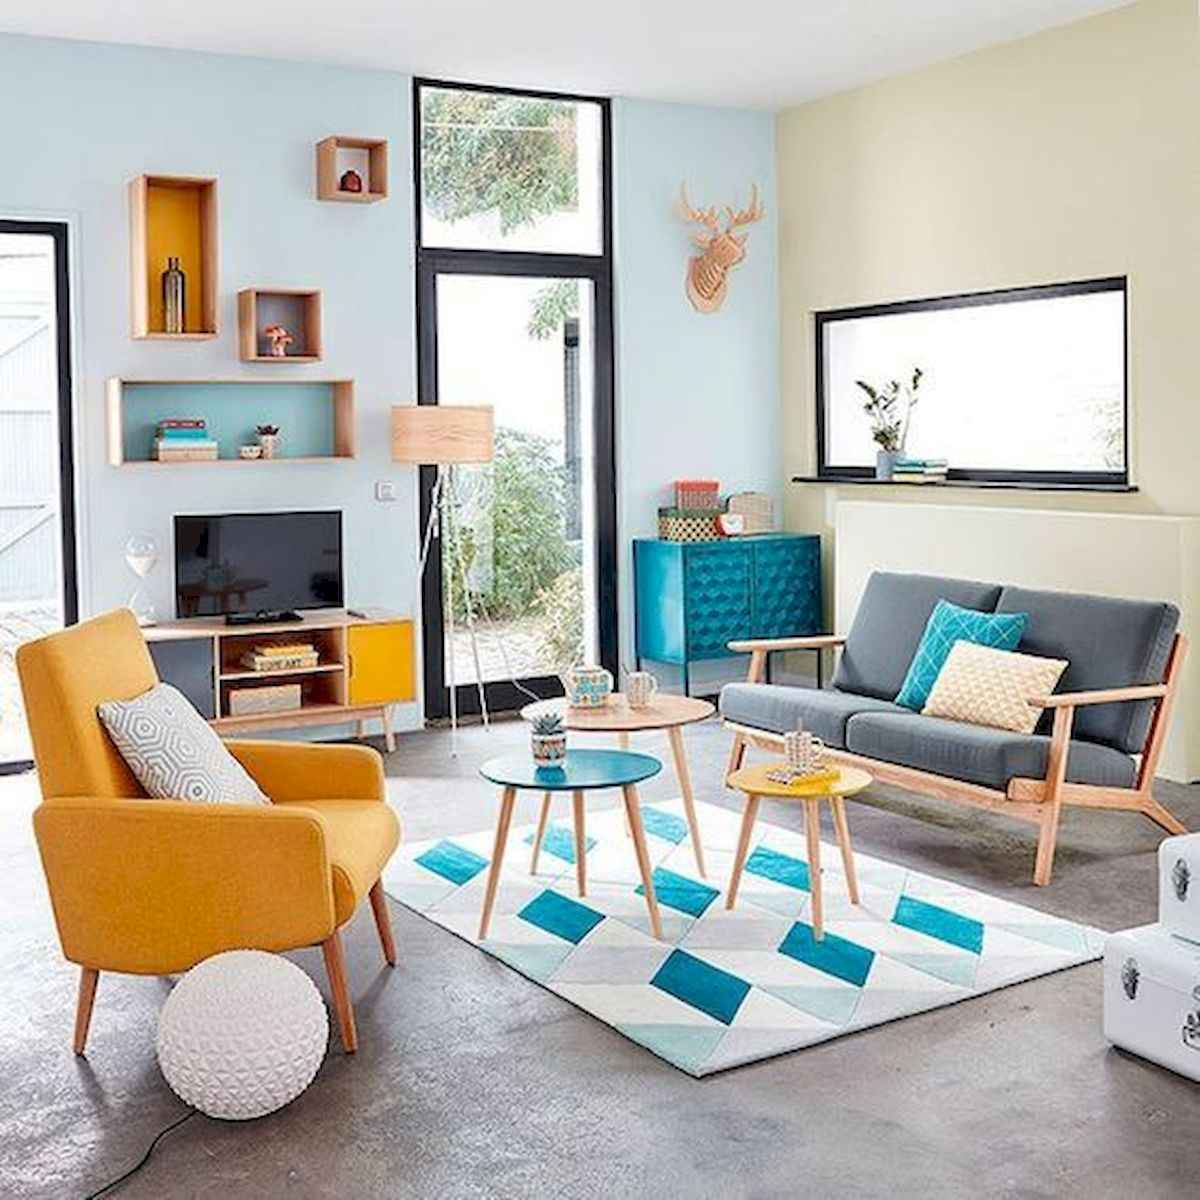 80+ Stunning Colorful Living Room Decor Ideas And Remodel for Summer Project (47)